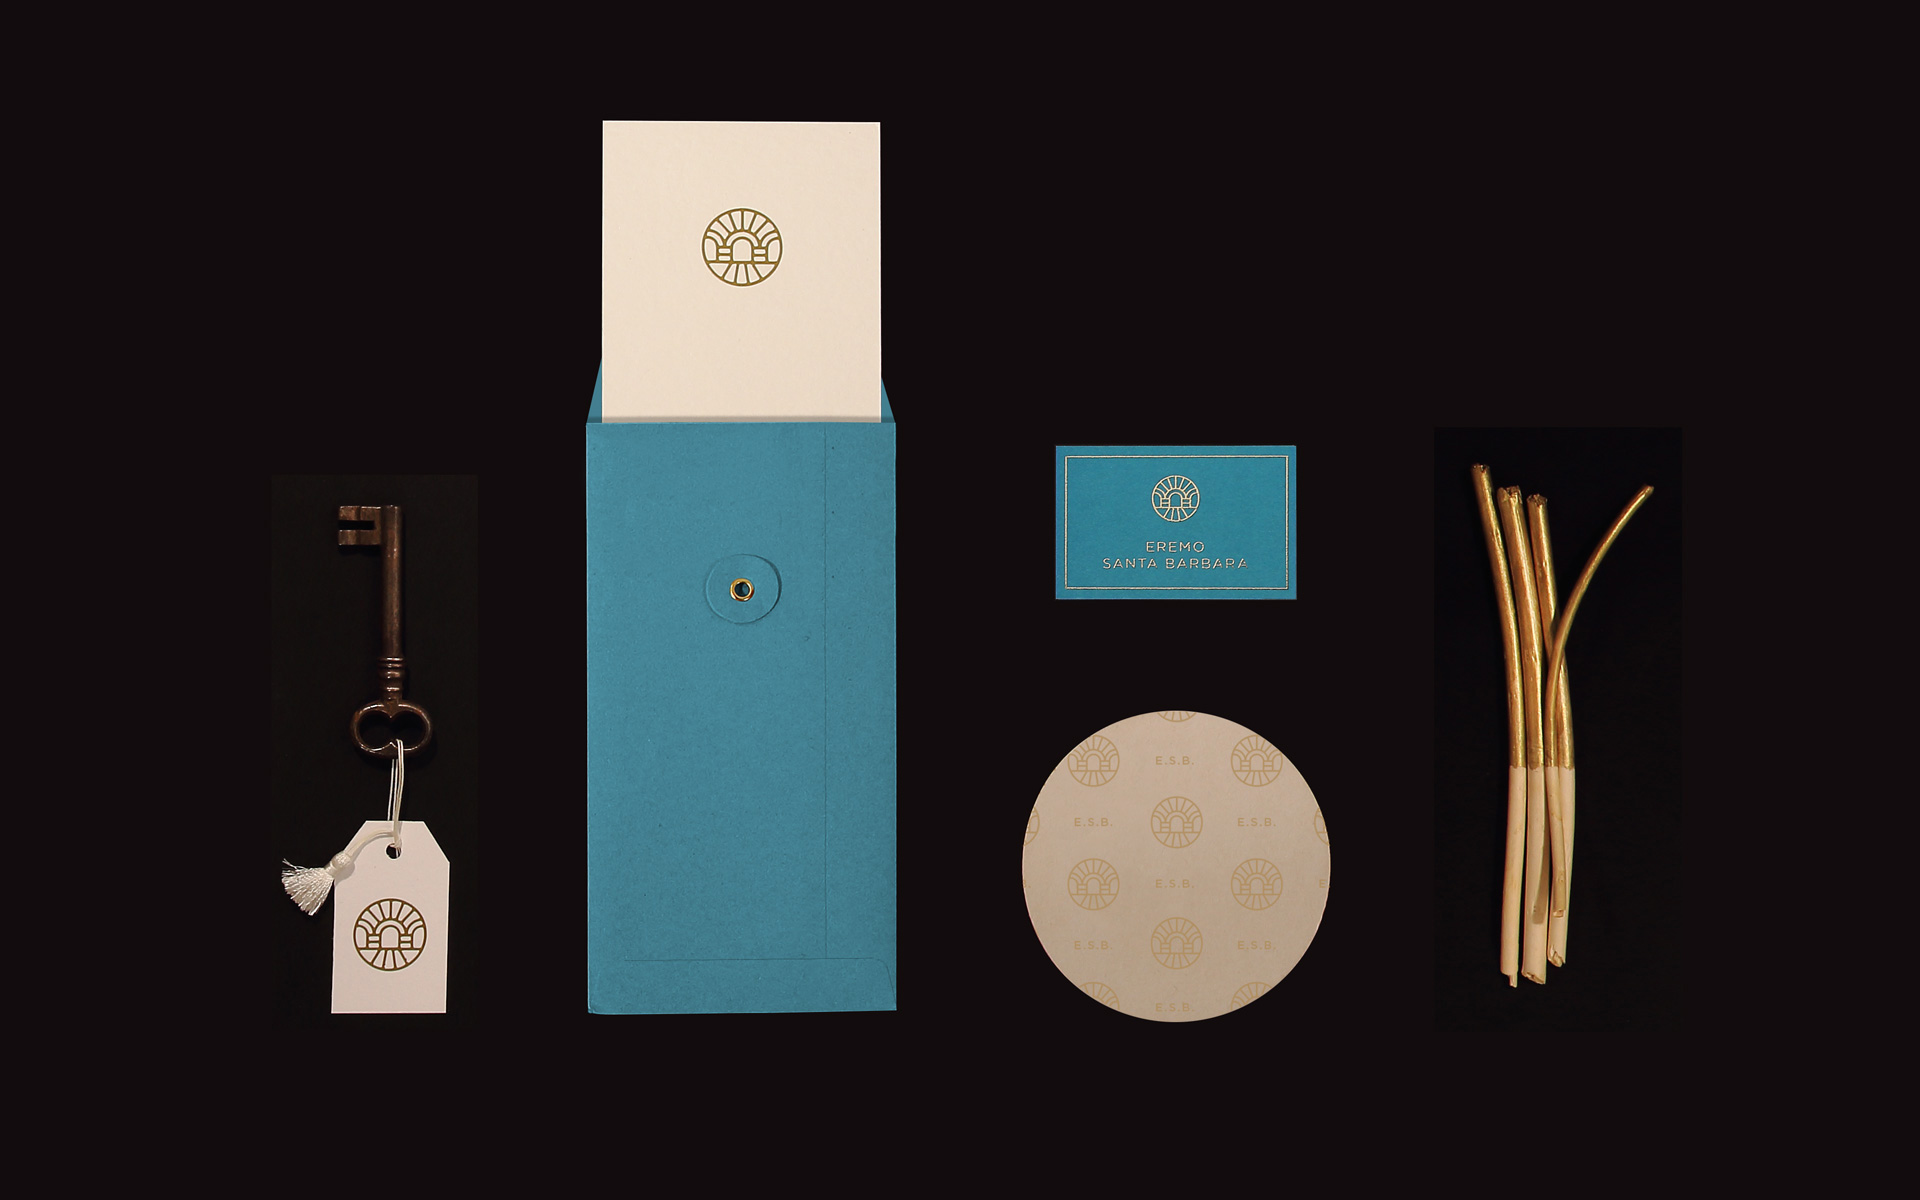 Eremo Santa Barbara stationery design